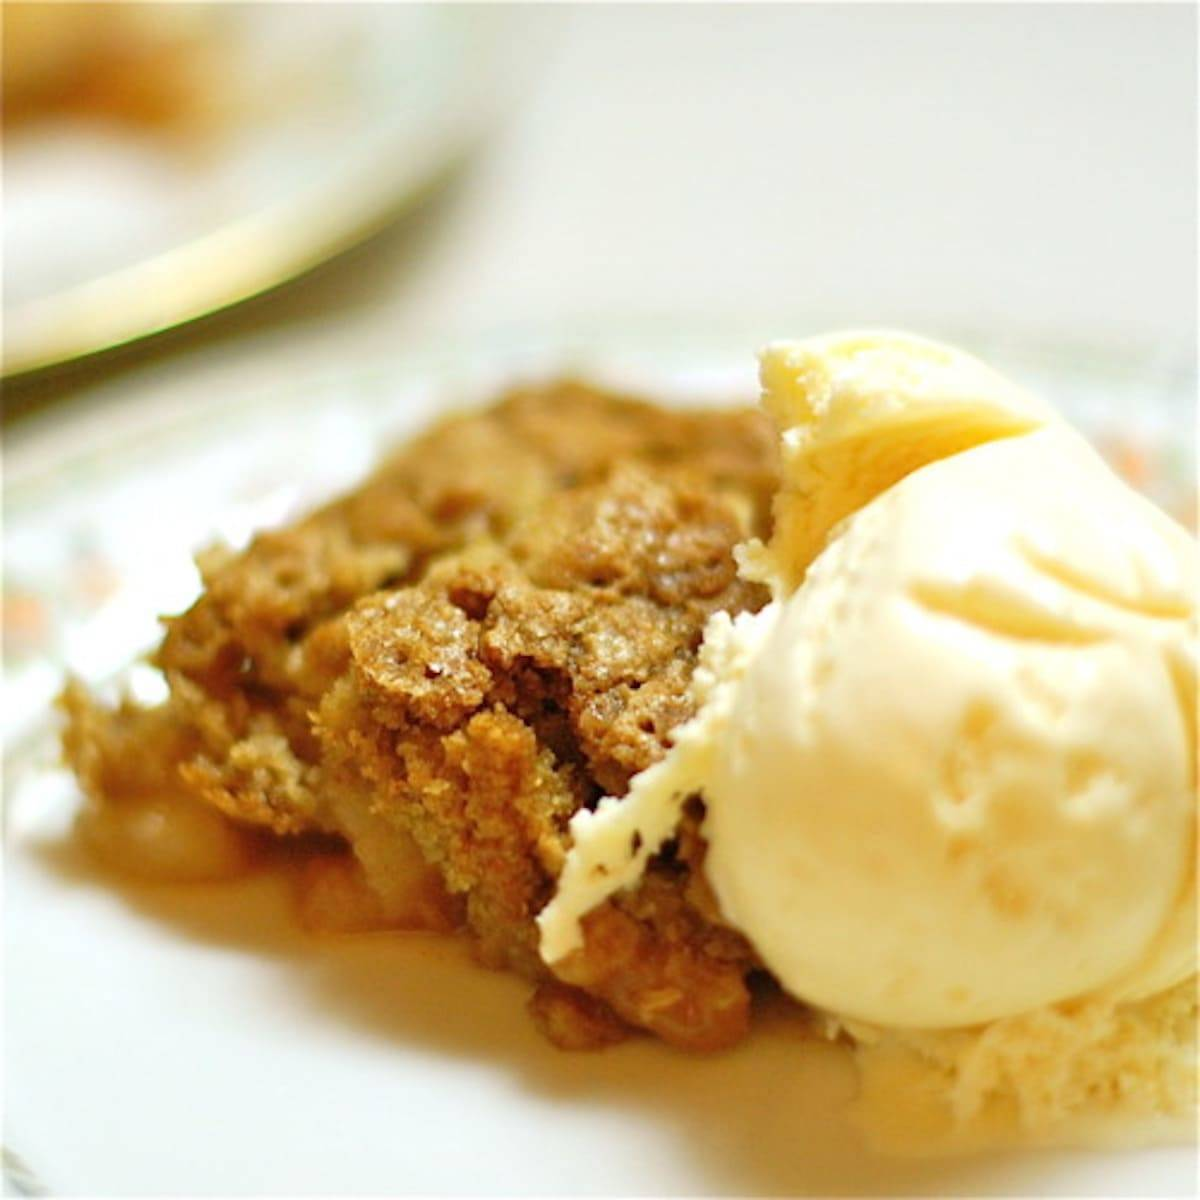 Apple crisp with ice cream on a plate.